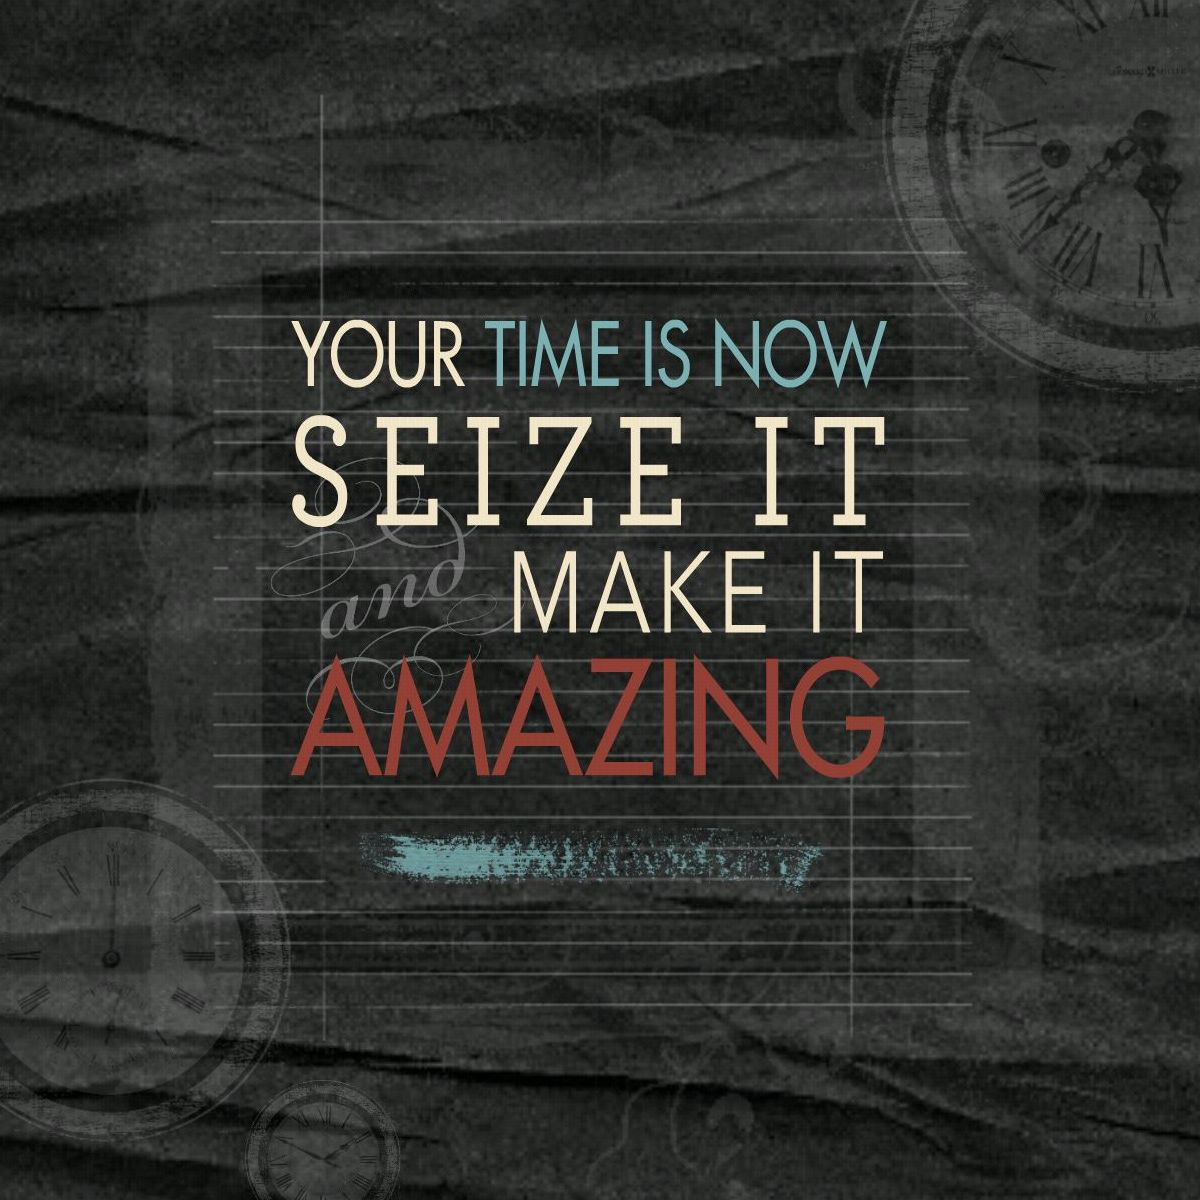 Make It Amazing